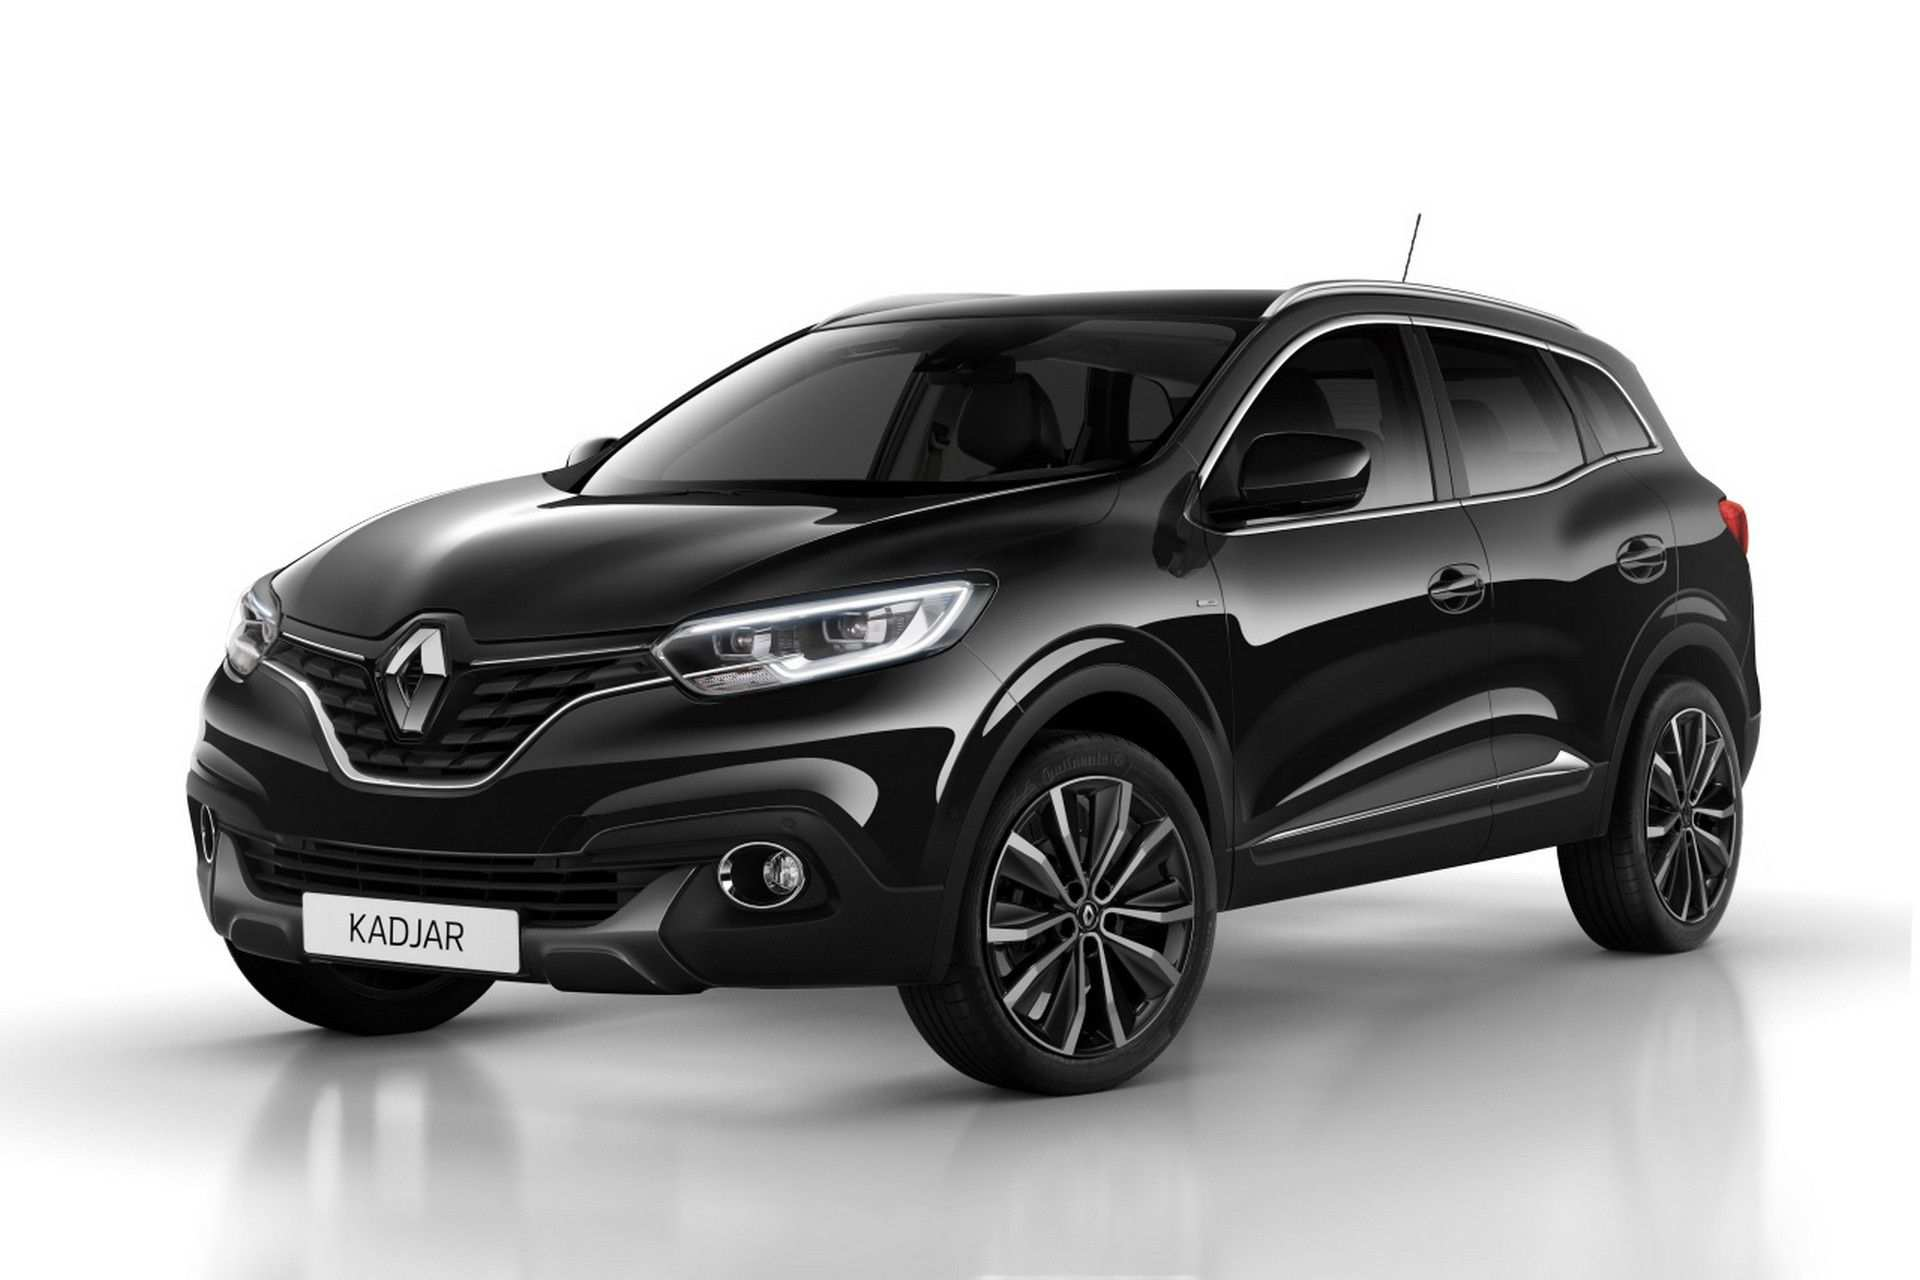 84 The 2020 Renault Kadjar Price